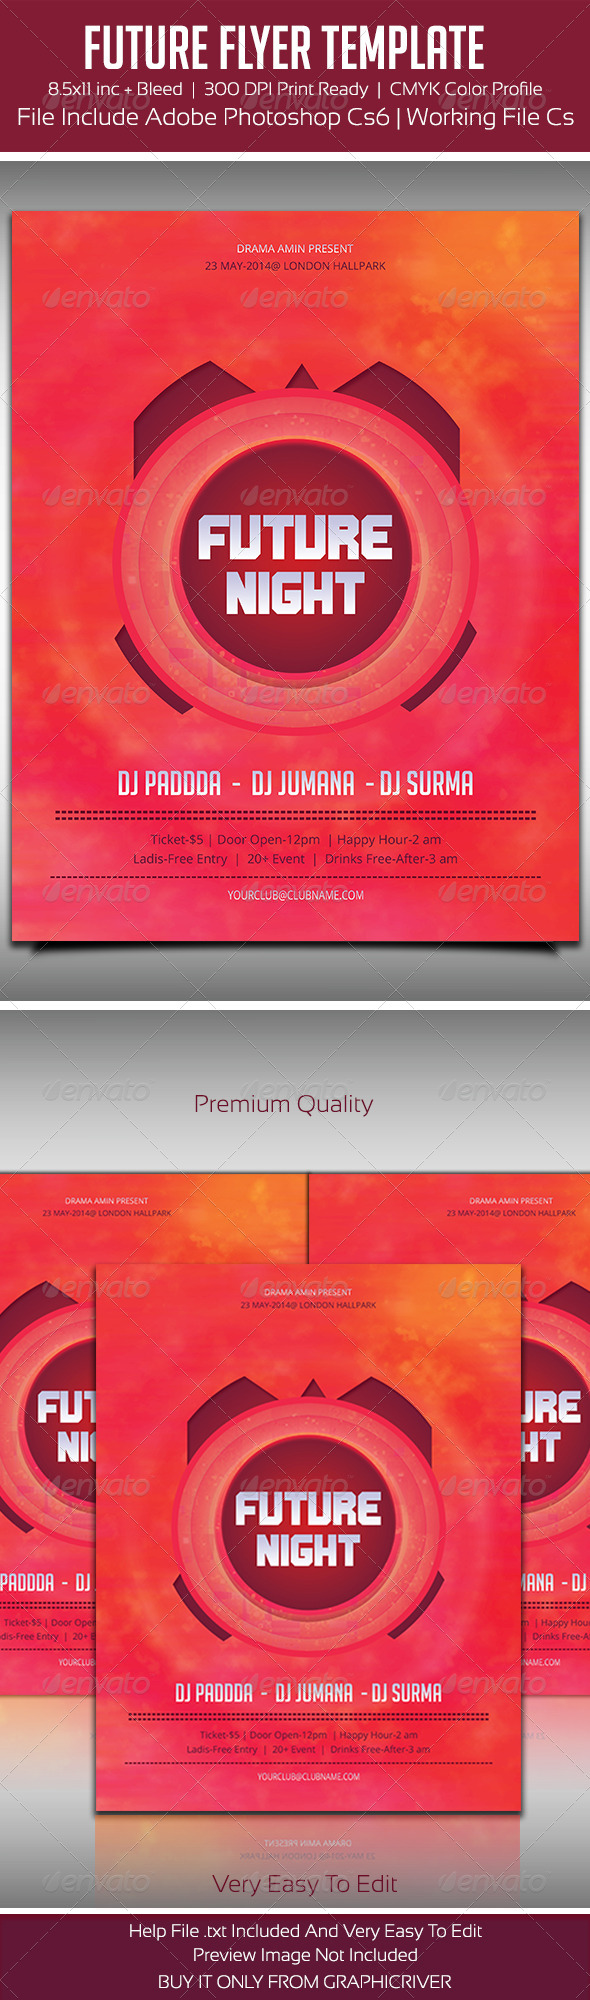 Future Flyer Template - Flyers Print Templates